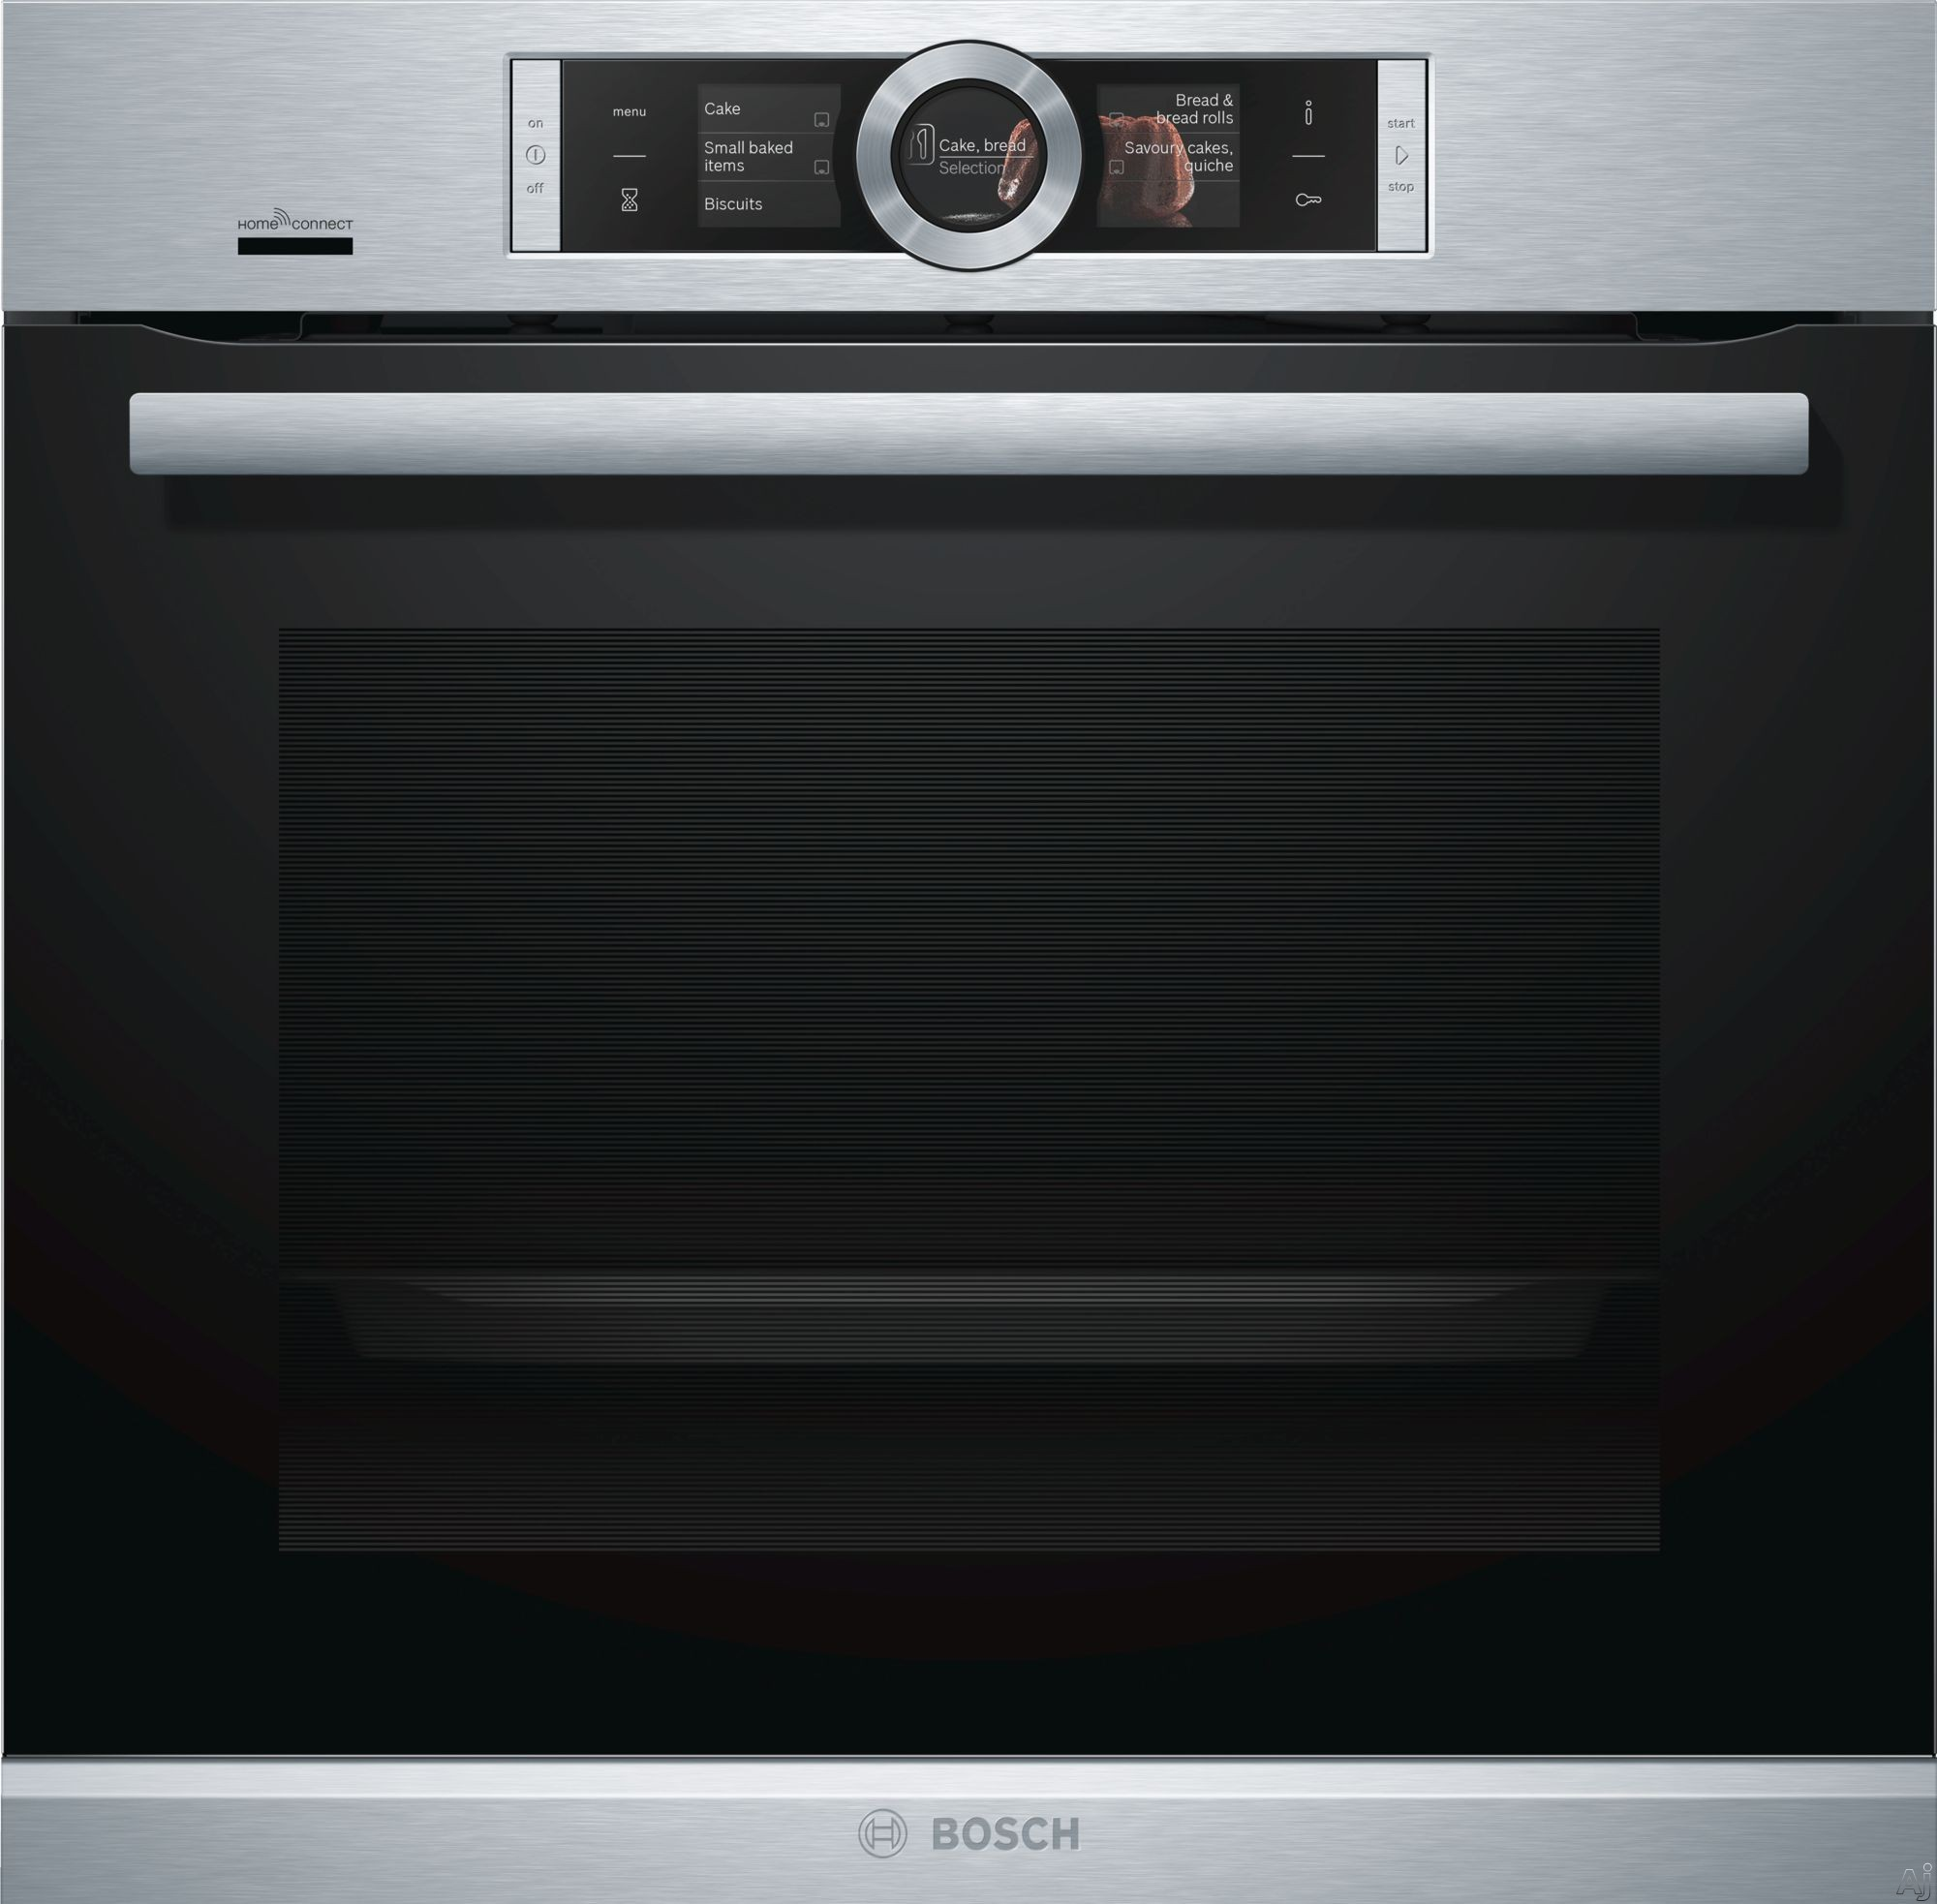 Bosch 500 Series Hbe5452uc 24 Inch Single Electric Wall Oven With Home Connect